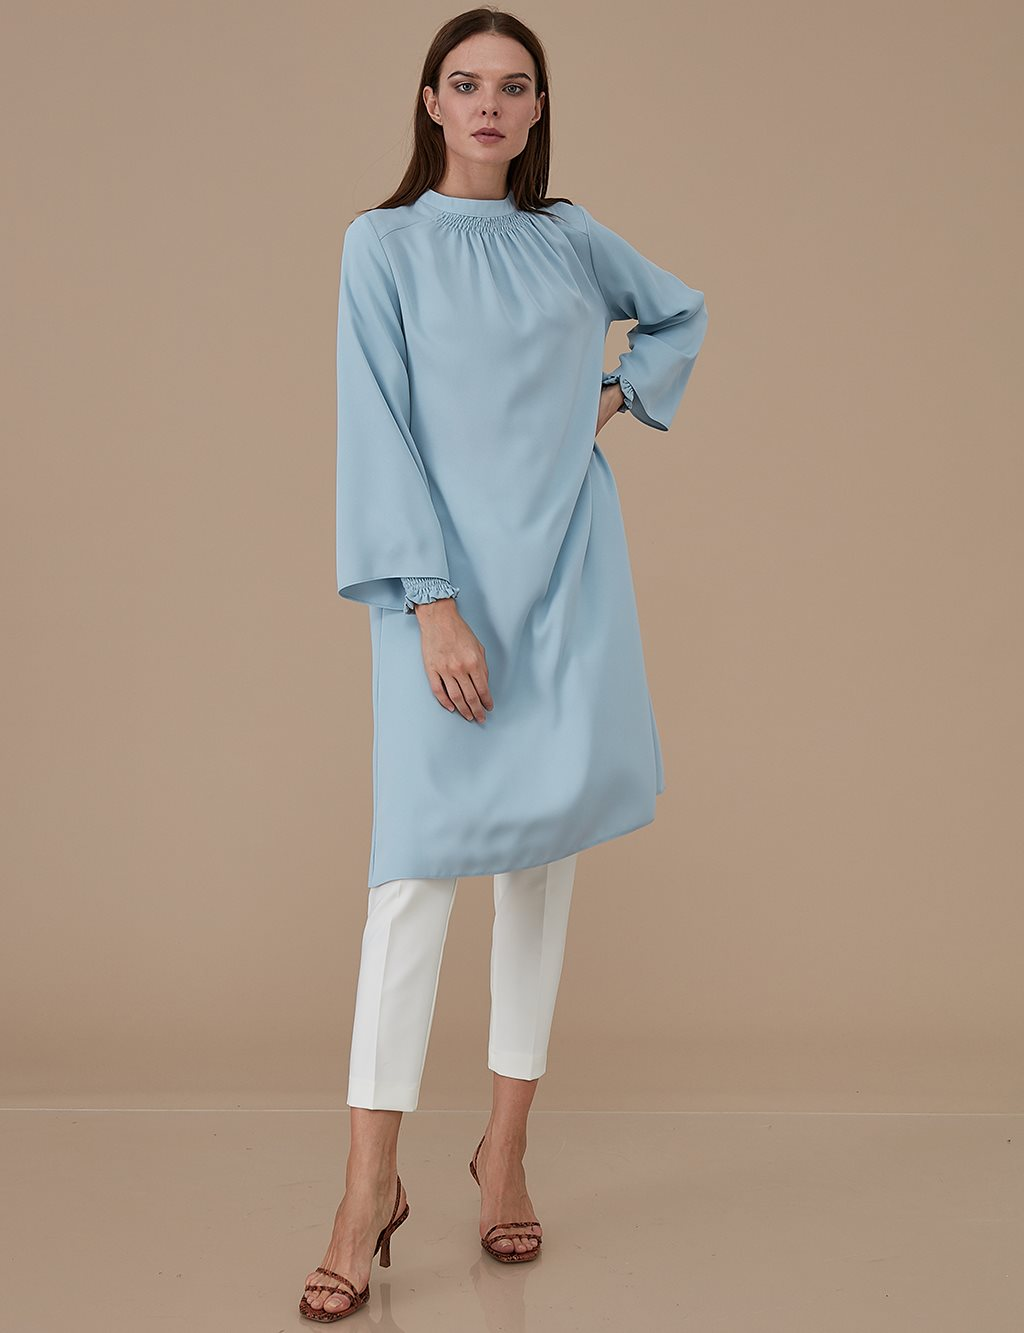 Sleeve Detailed Tunic A9 21190 Blue